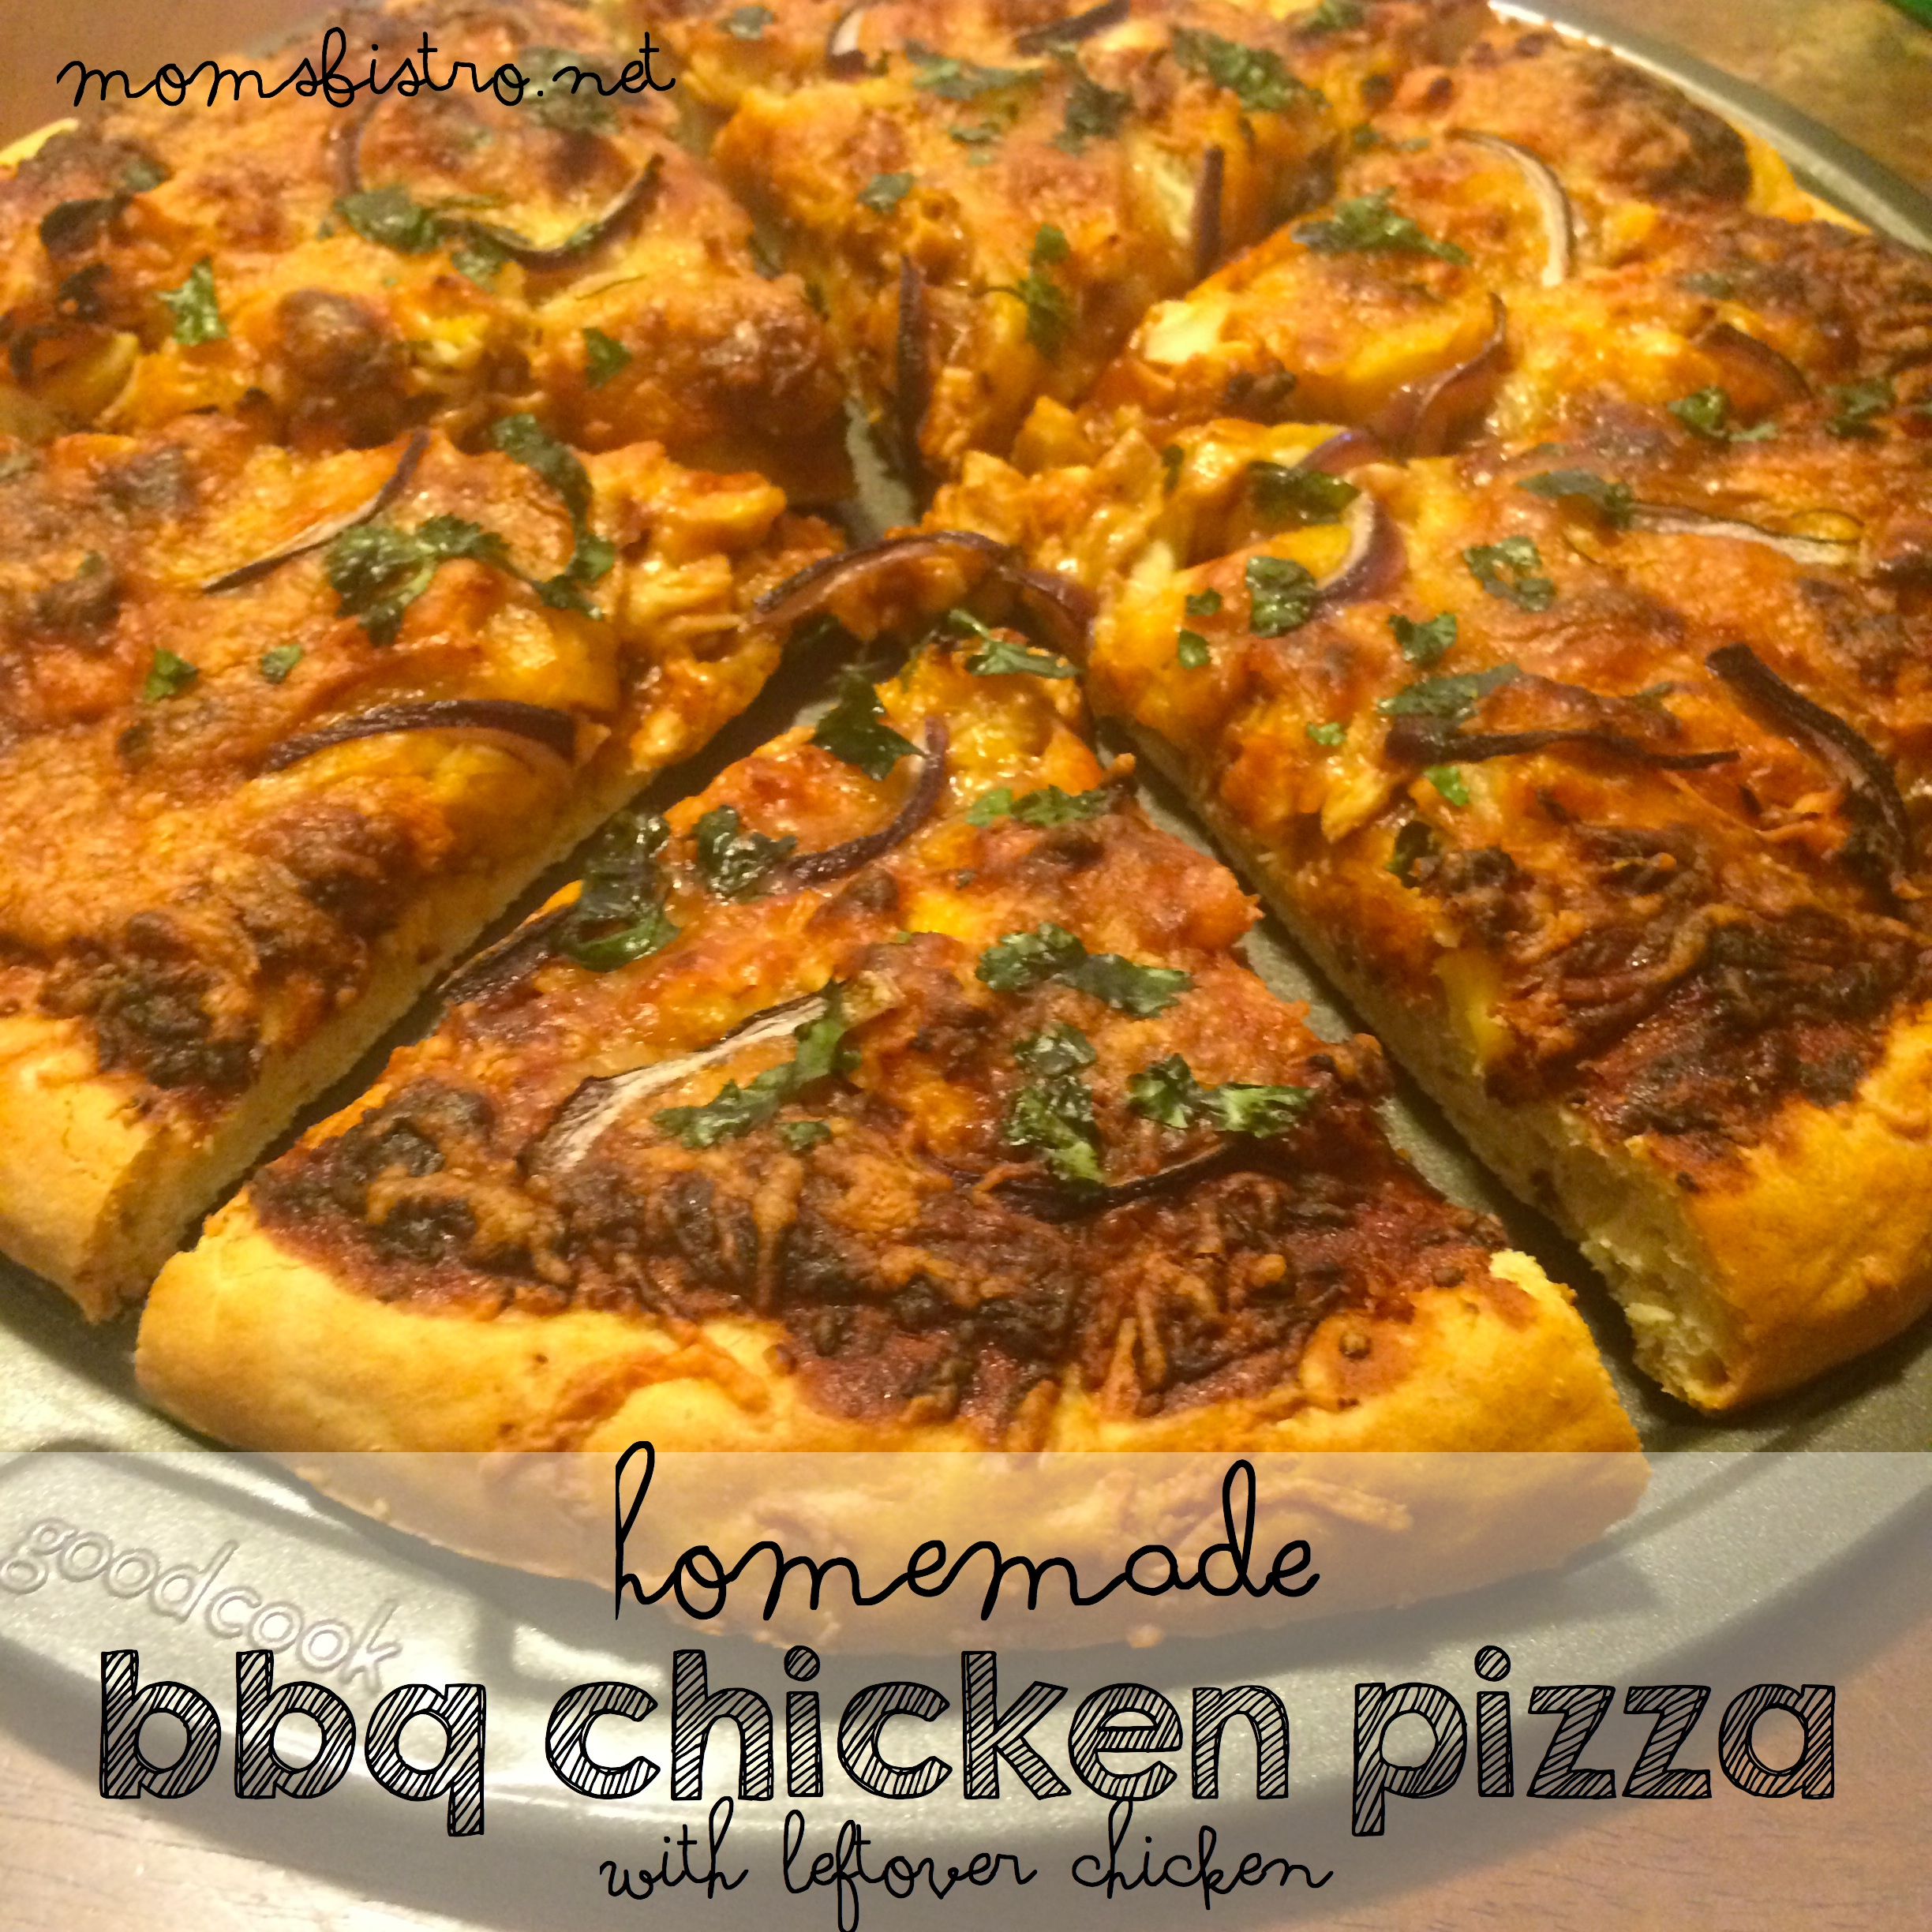 Another Easy and Tasty Way To Use Up Leftover Chicken – BBQ Chicken Pizza with Leftover Chicken Recipe